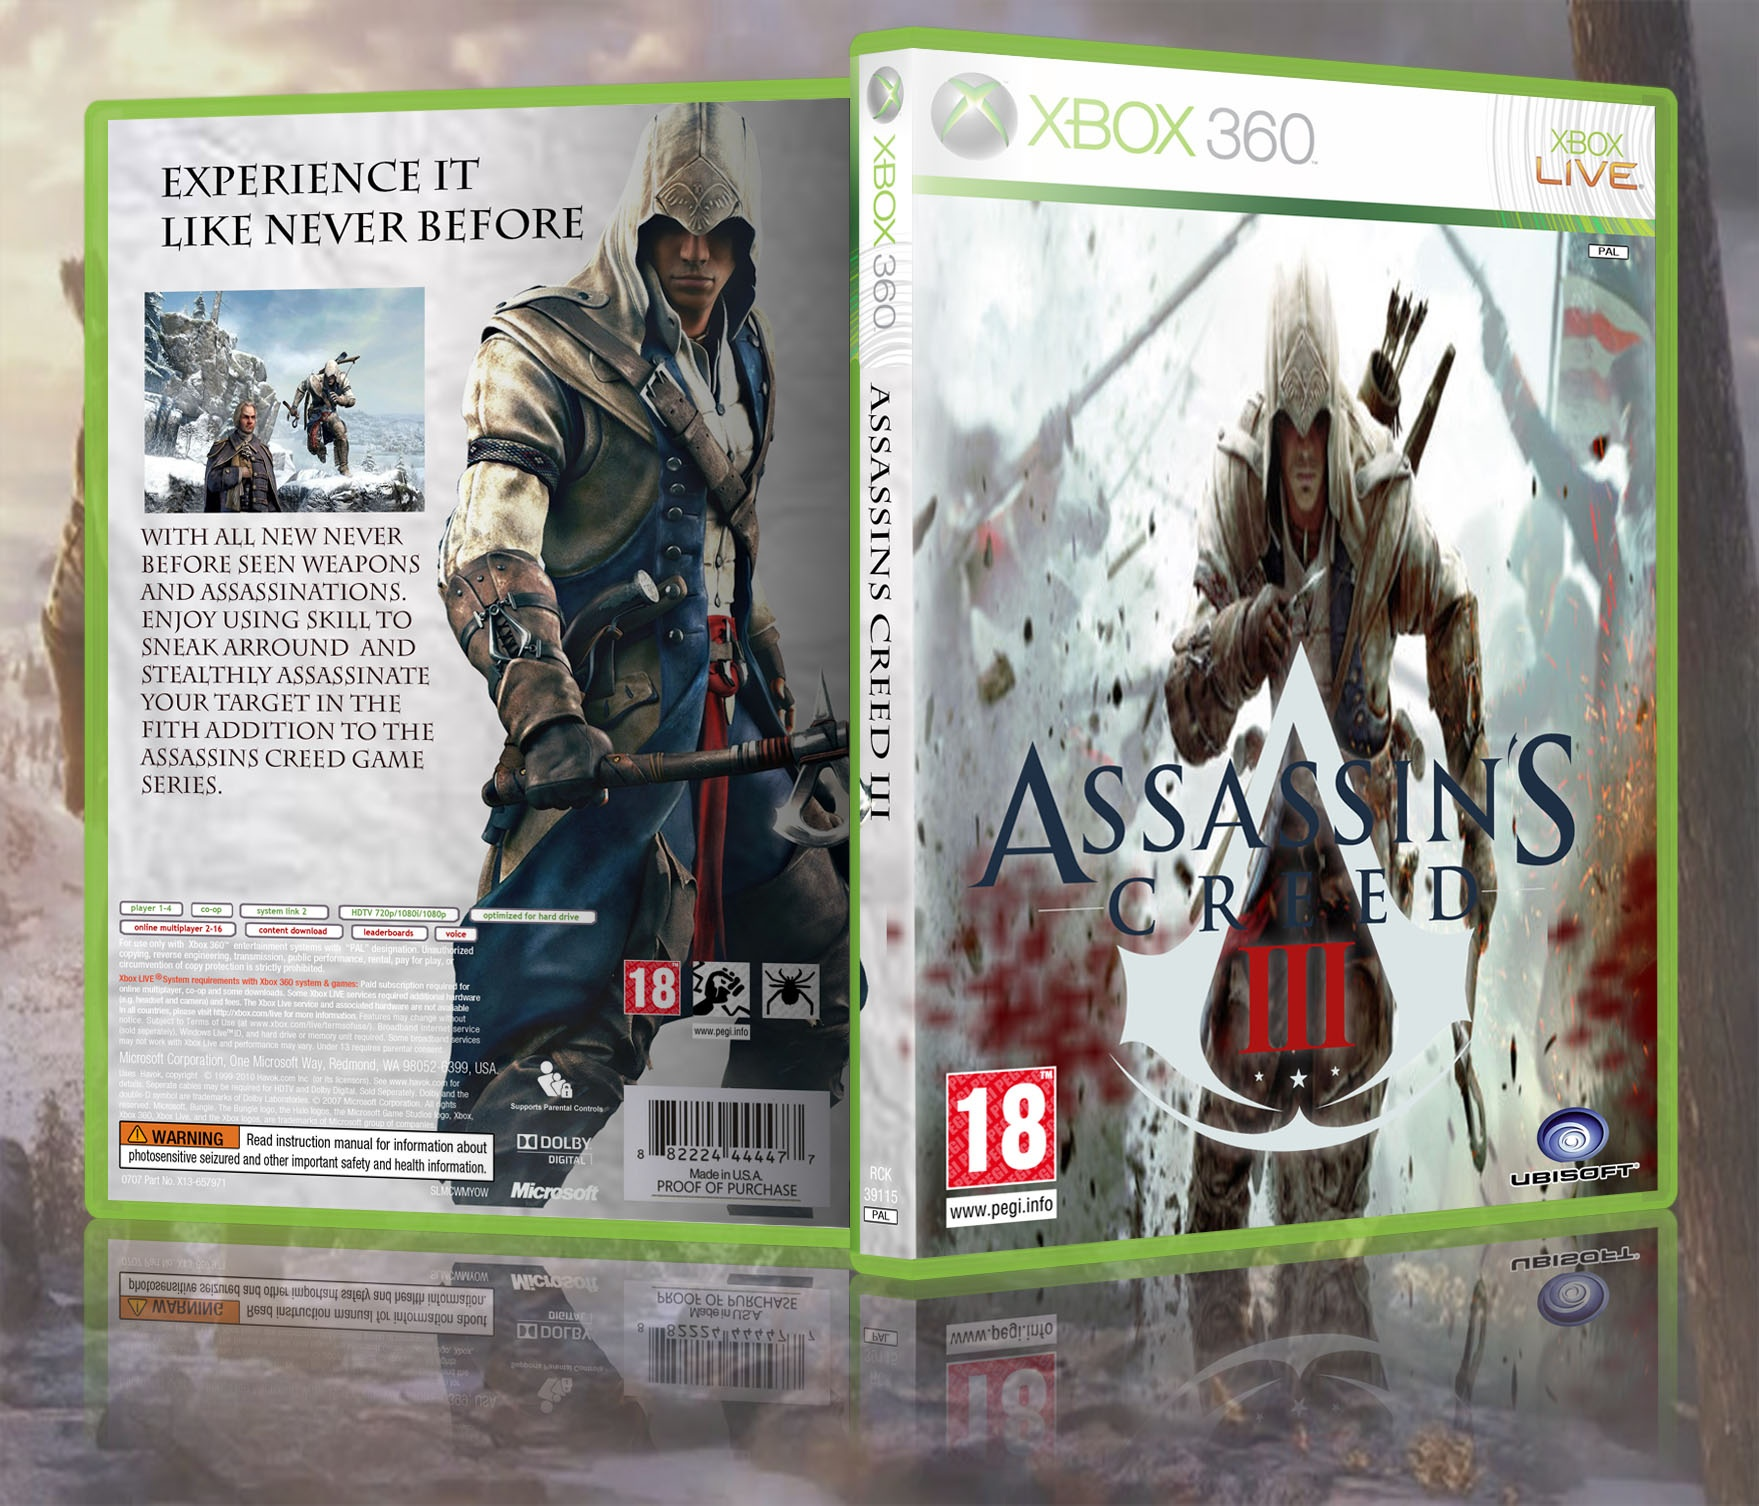 Assassins Creed III box cover